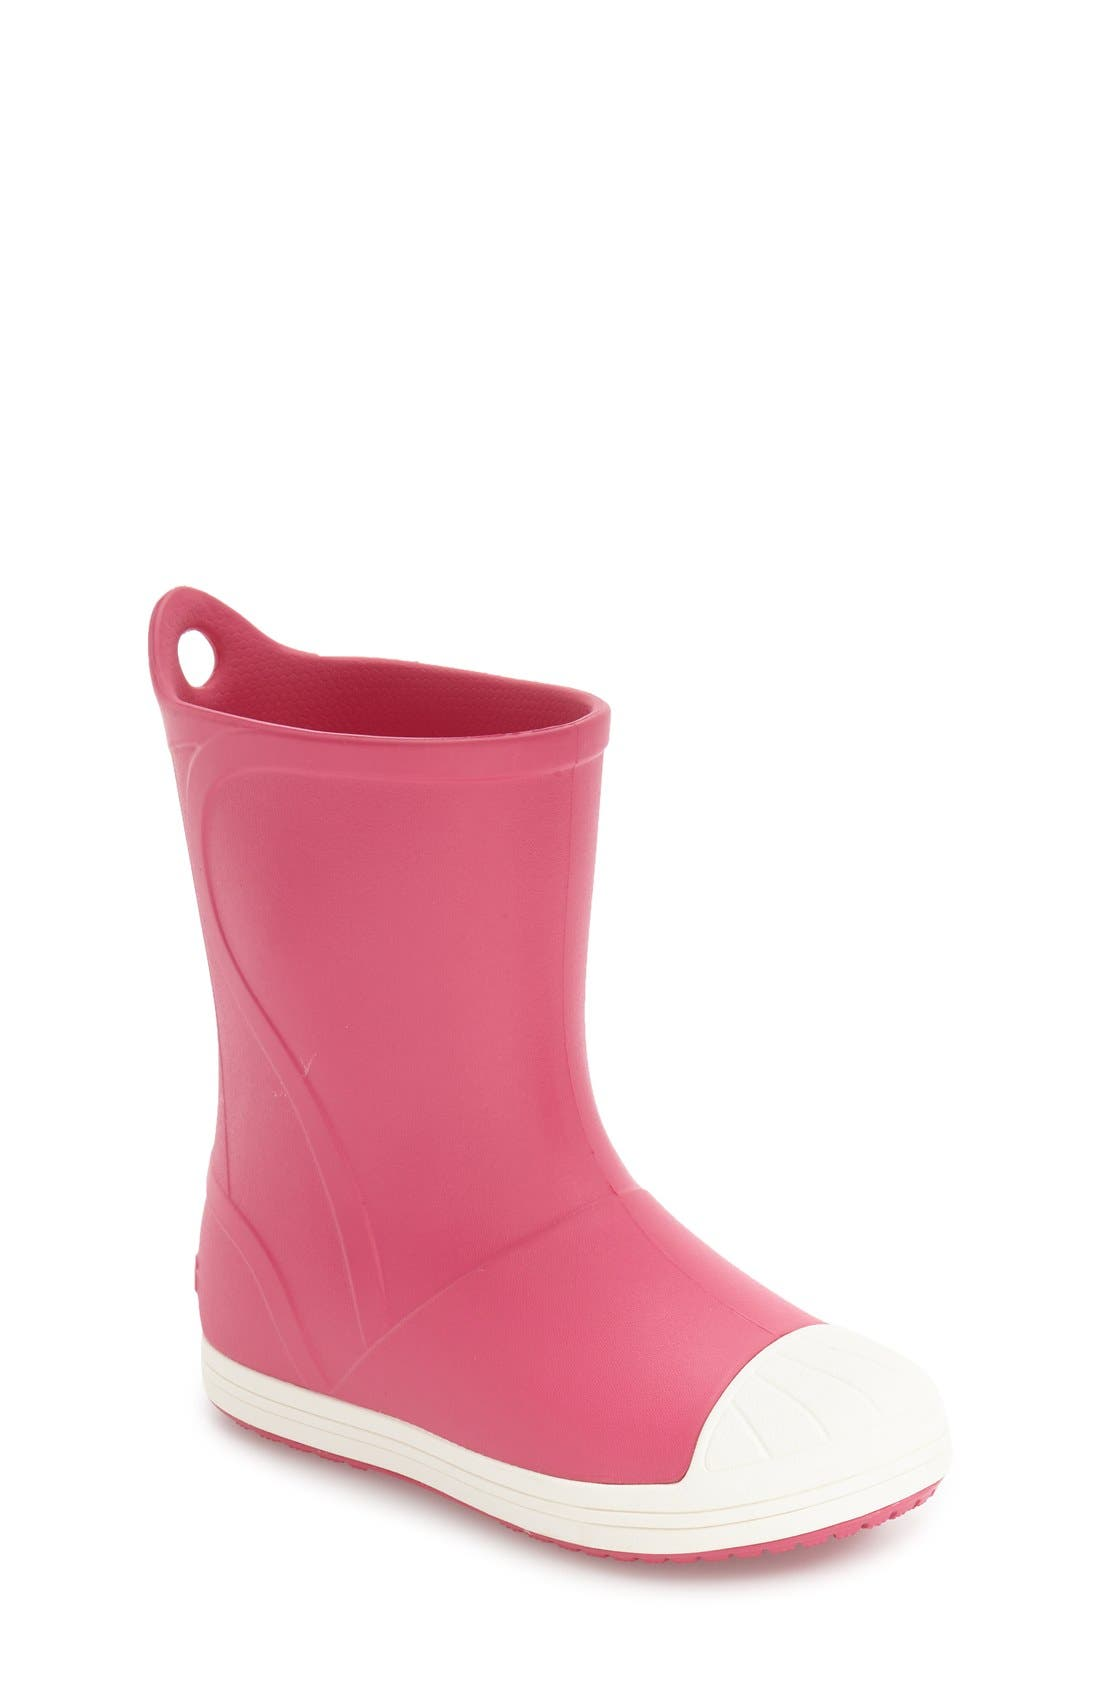 Bump It Waterproof Rain Boot,                         Main,                         color, Candy Pink/ Oyster